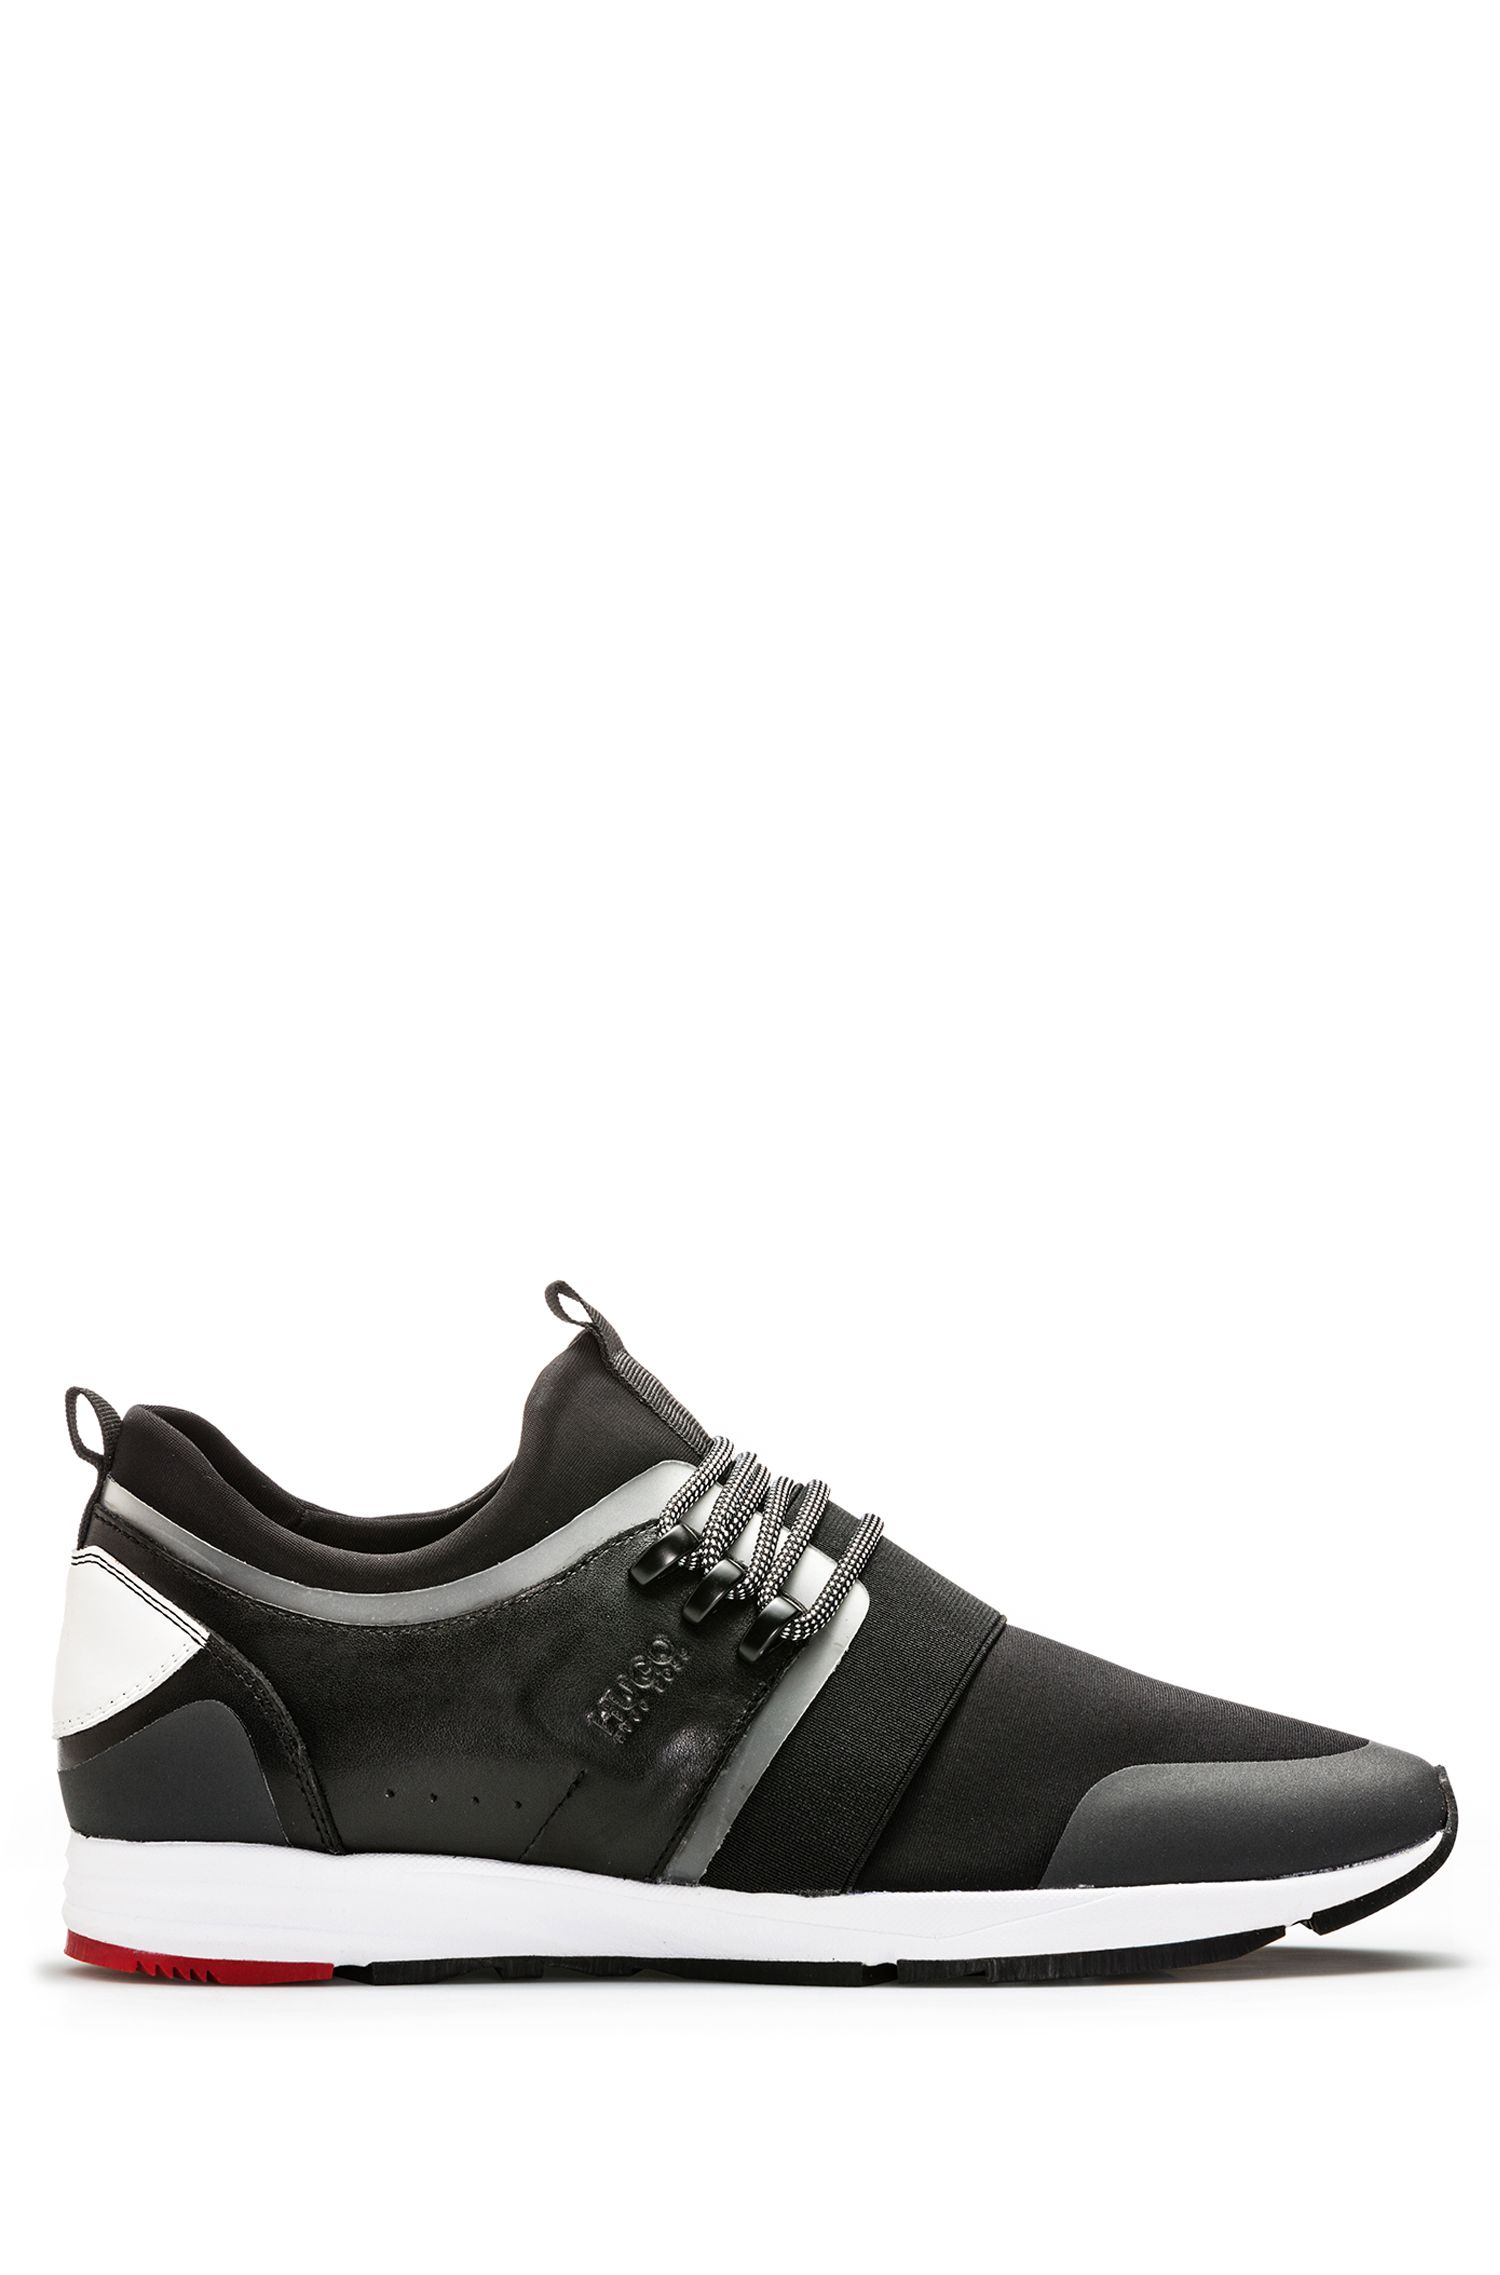 Lace-up trainers with hybrid uppers and Vibram sole, Black